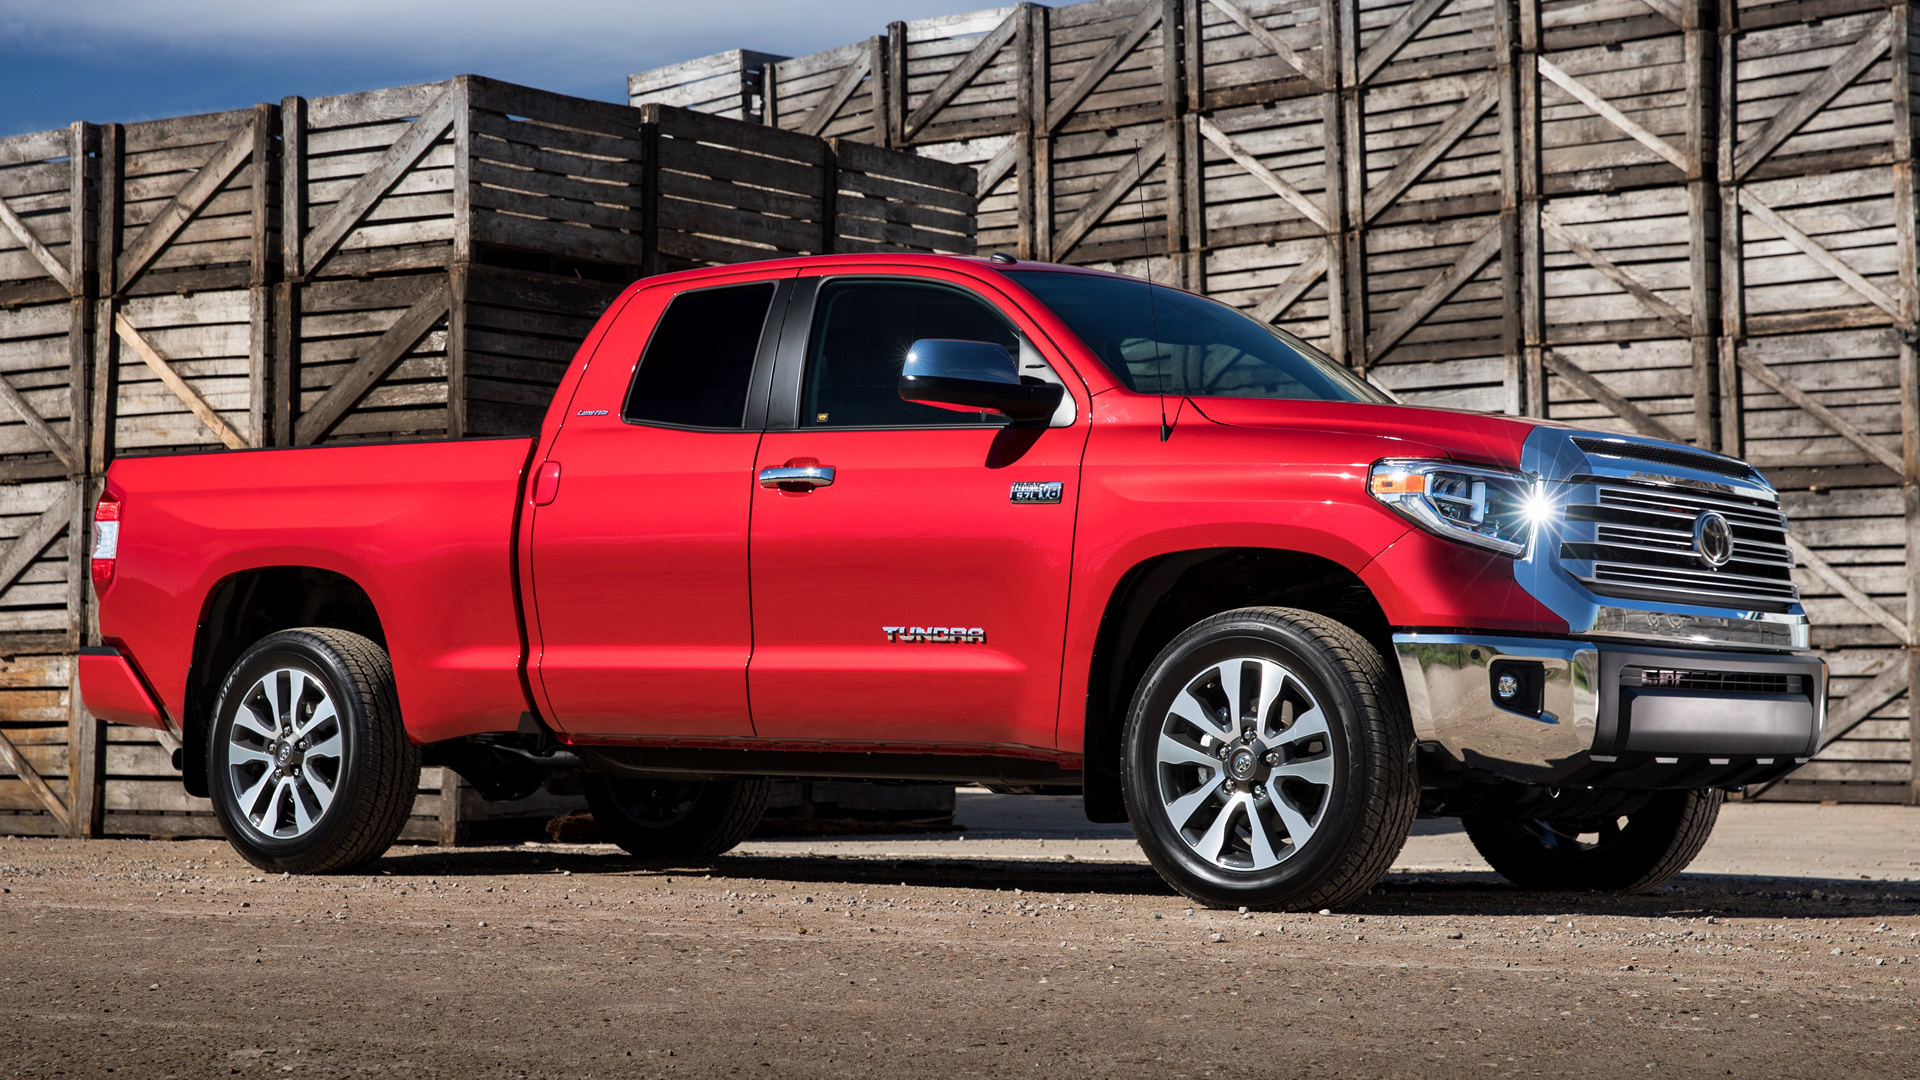 2018 Toyota Tundra Limited Double Cab Wallpapers And Hd